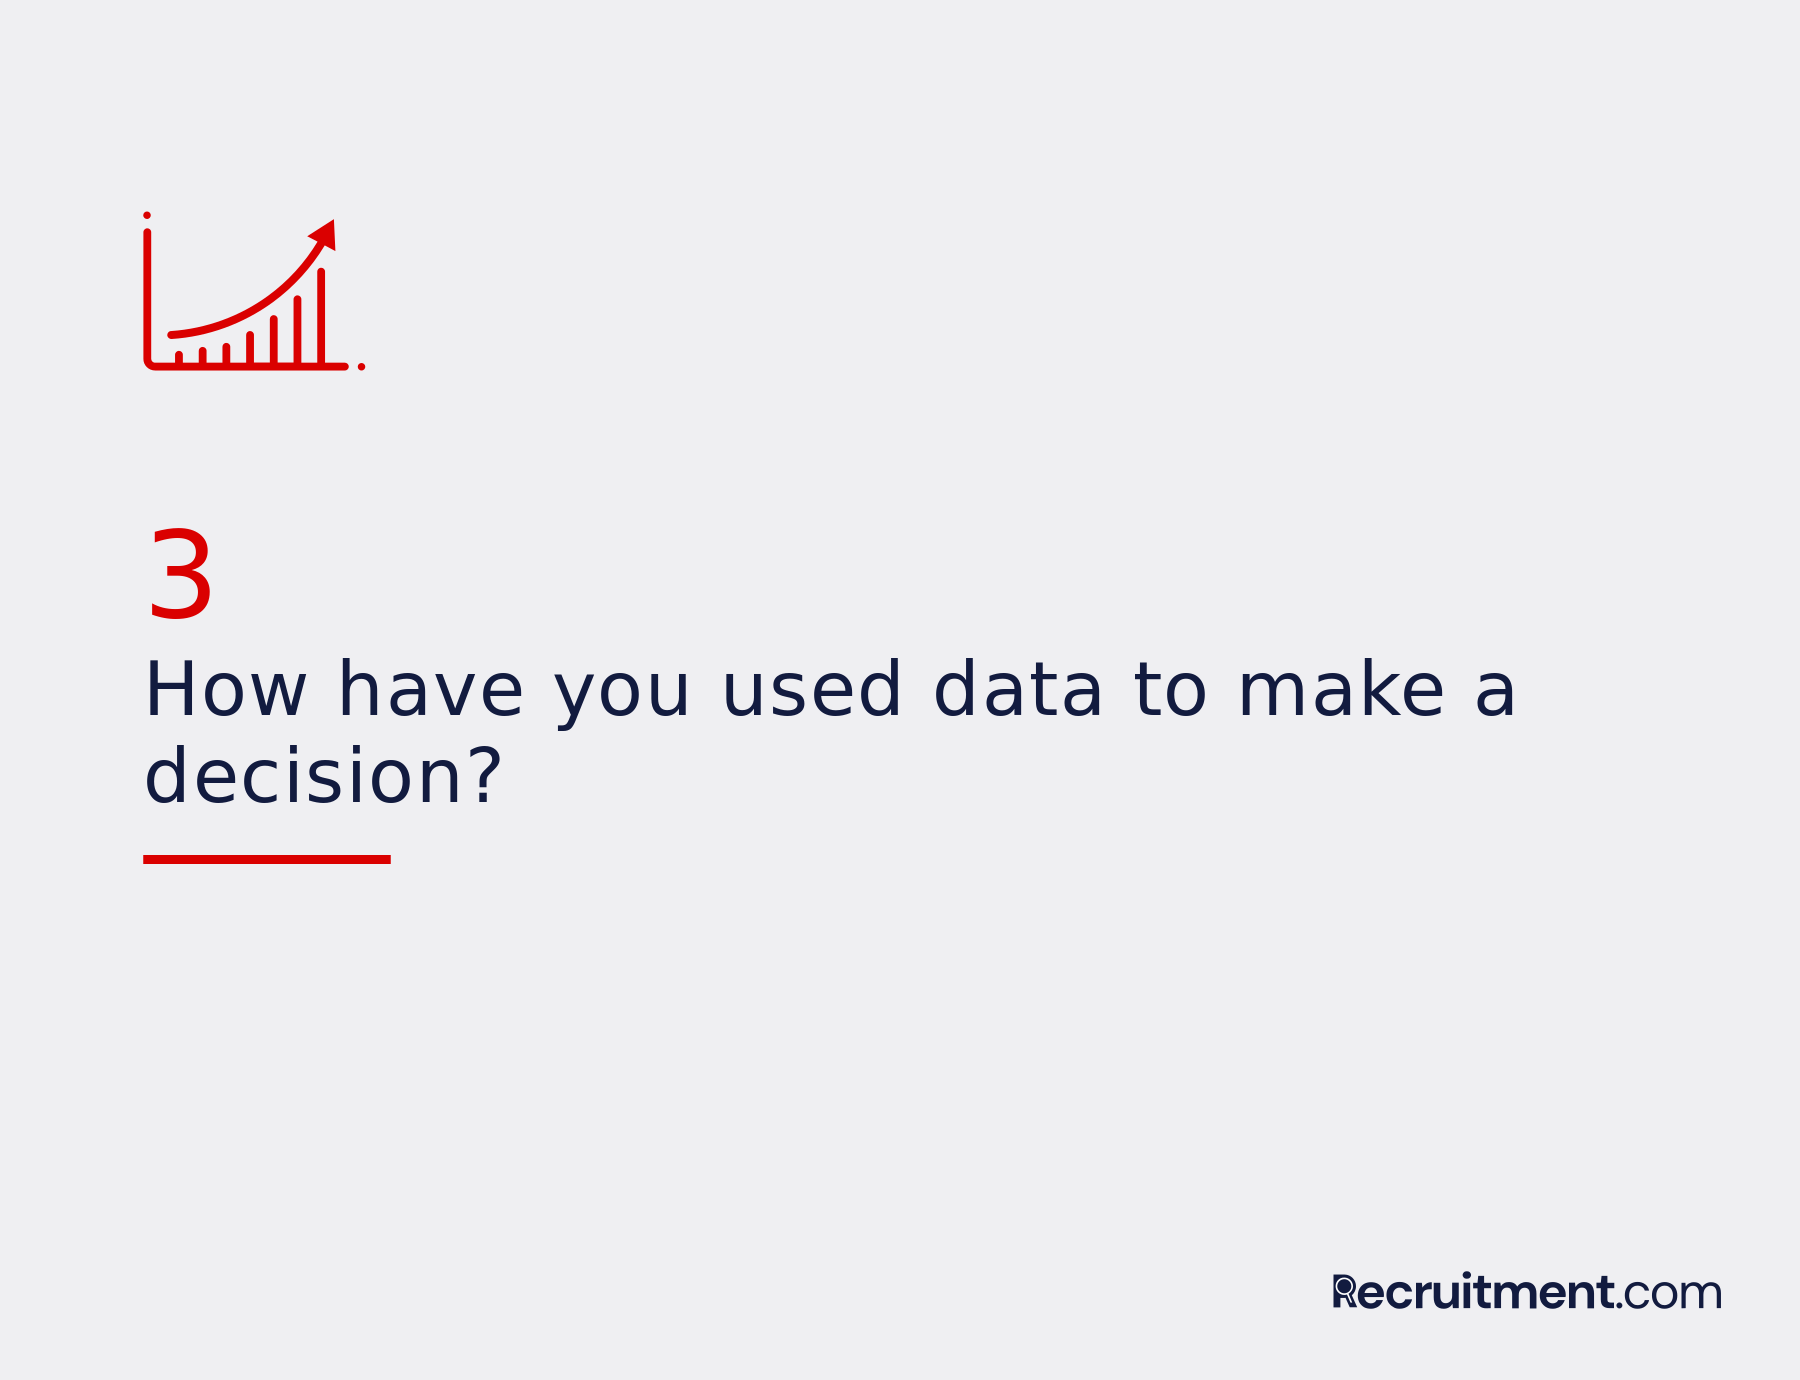 Common interview question 3: Use data to make a decision